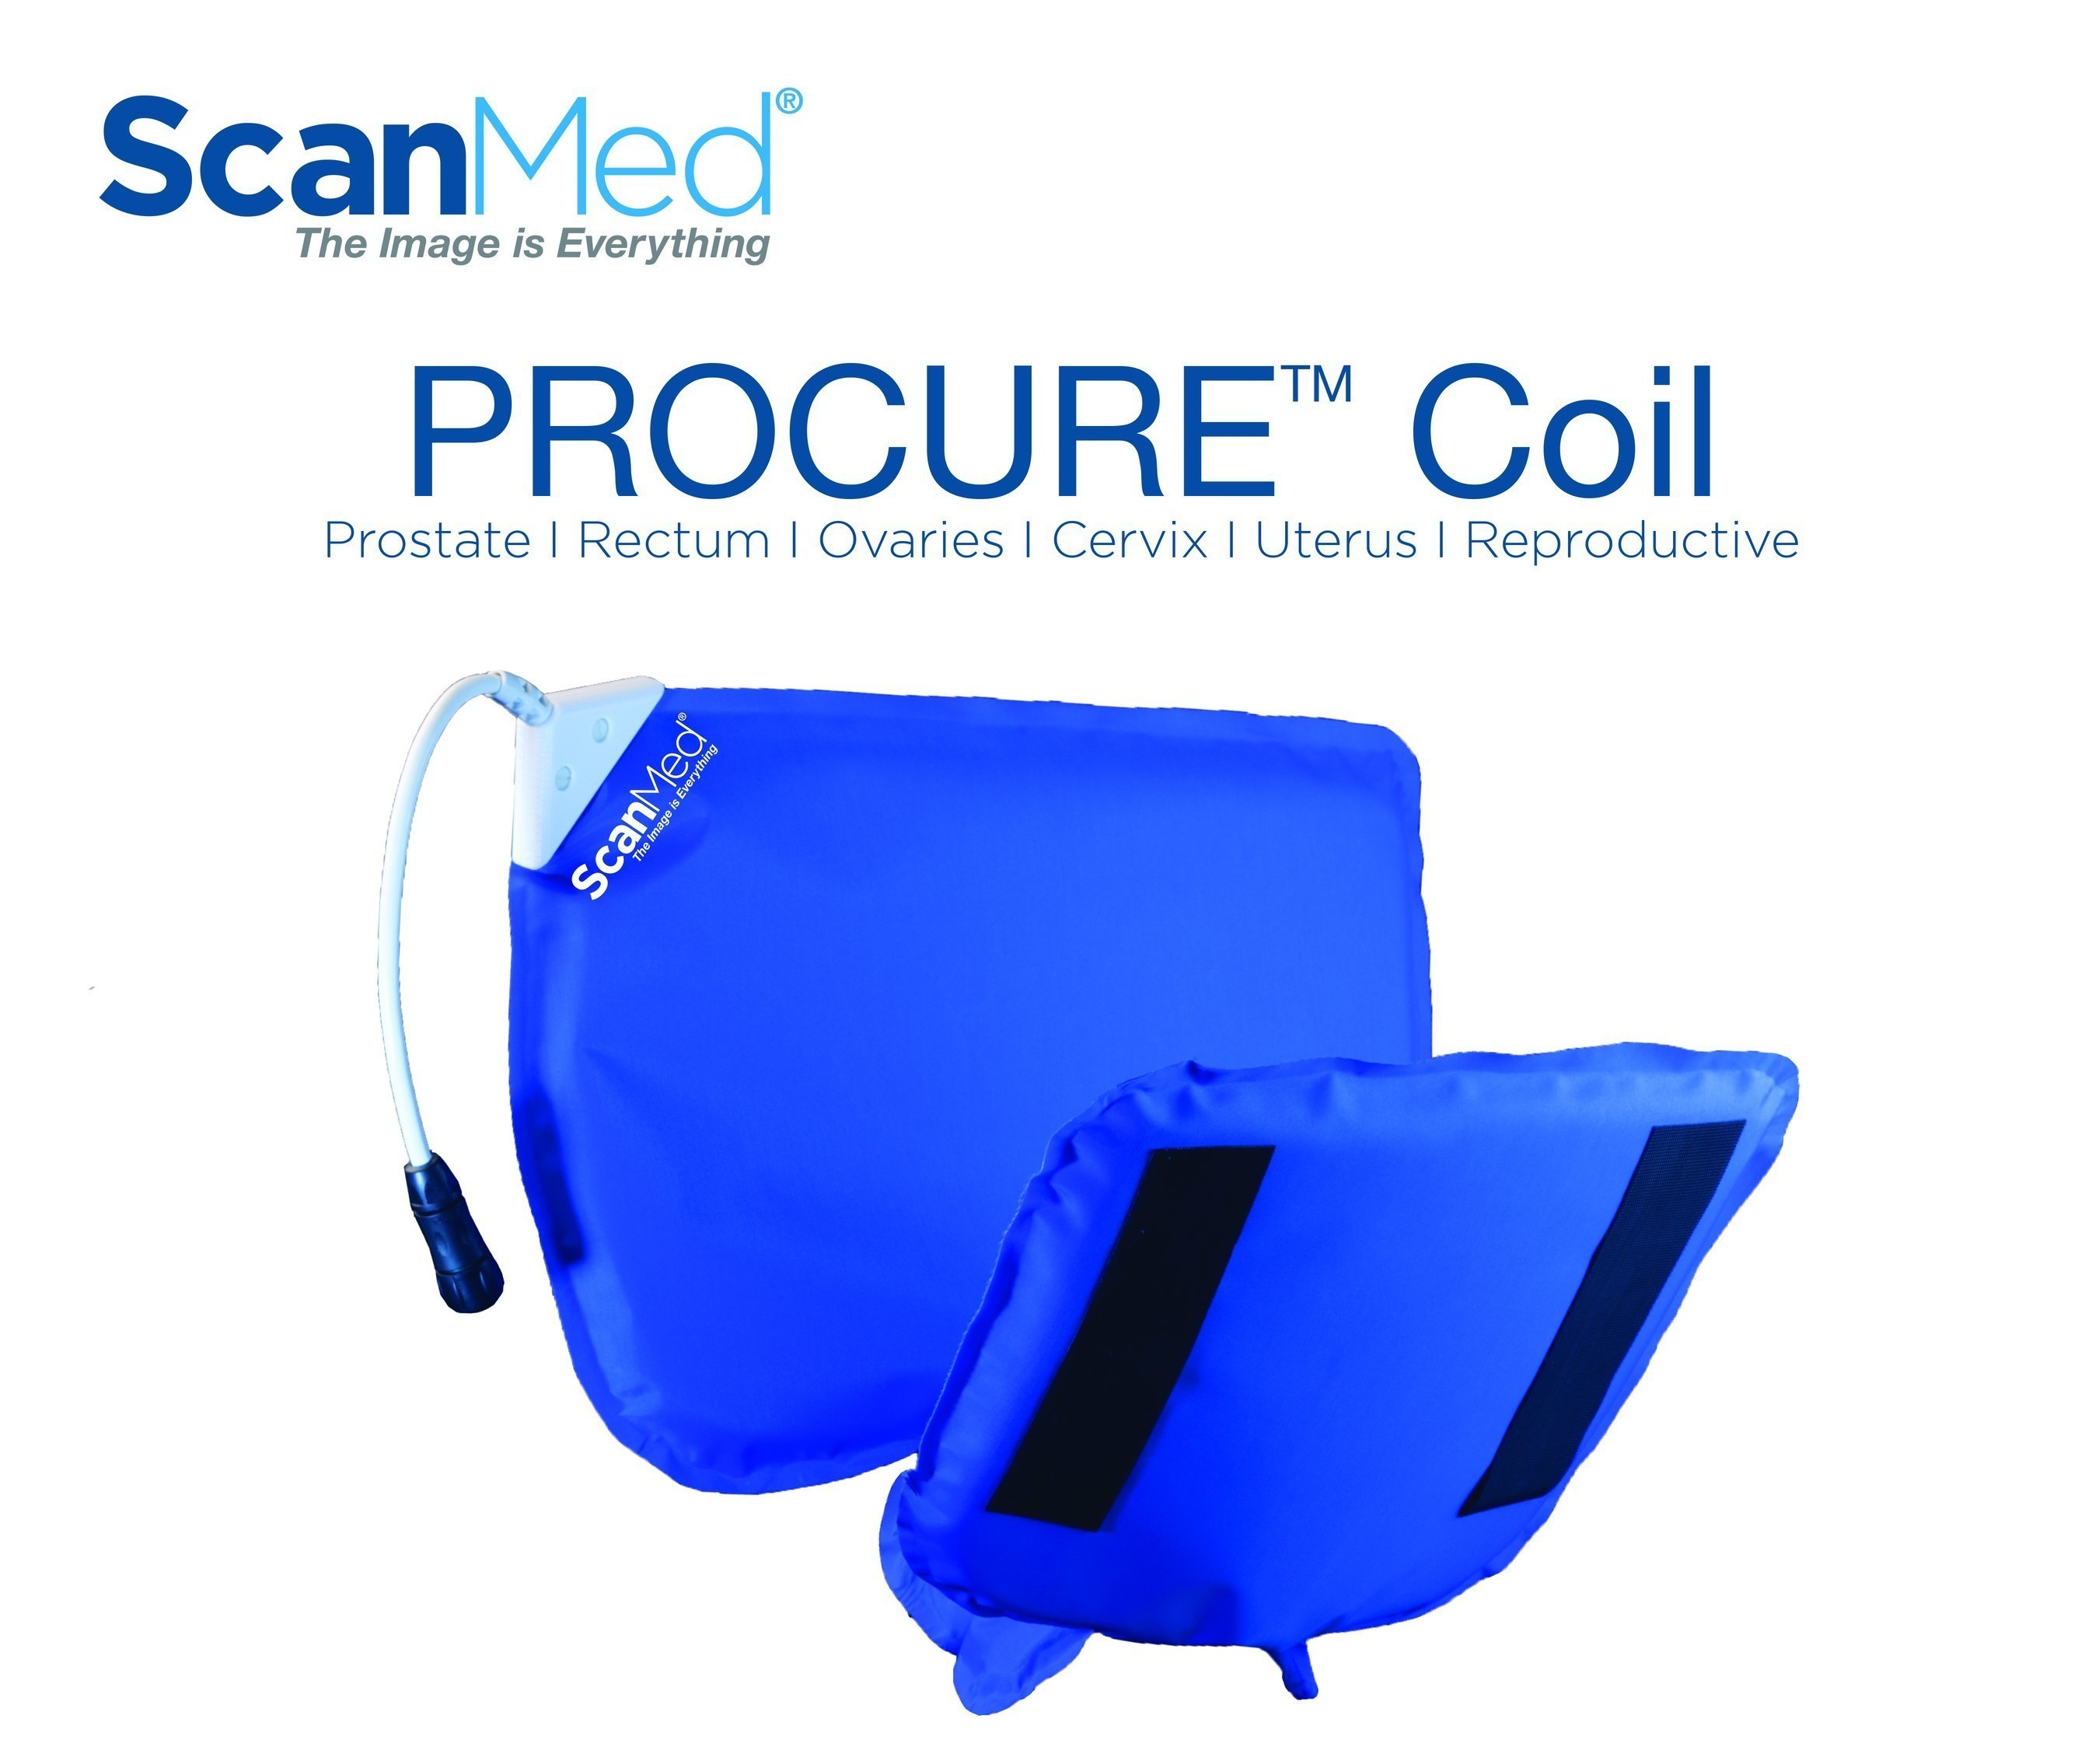 ScanMed meets global success with the world's first non-invasive, wearable prostate MRI coil, the PROCURE Coil. ScanMed CEO and inventor, Dr. Randall Jones, is awarded 11th patent for his invention.